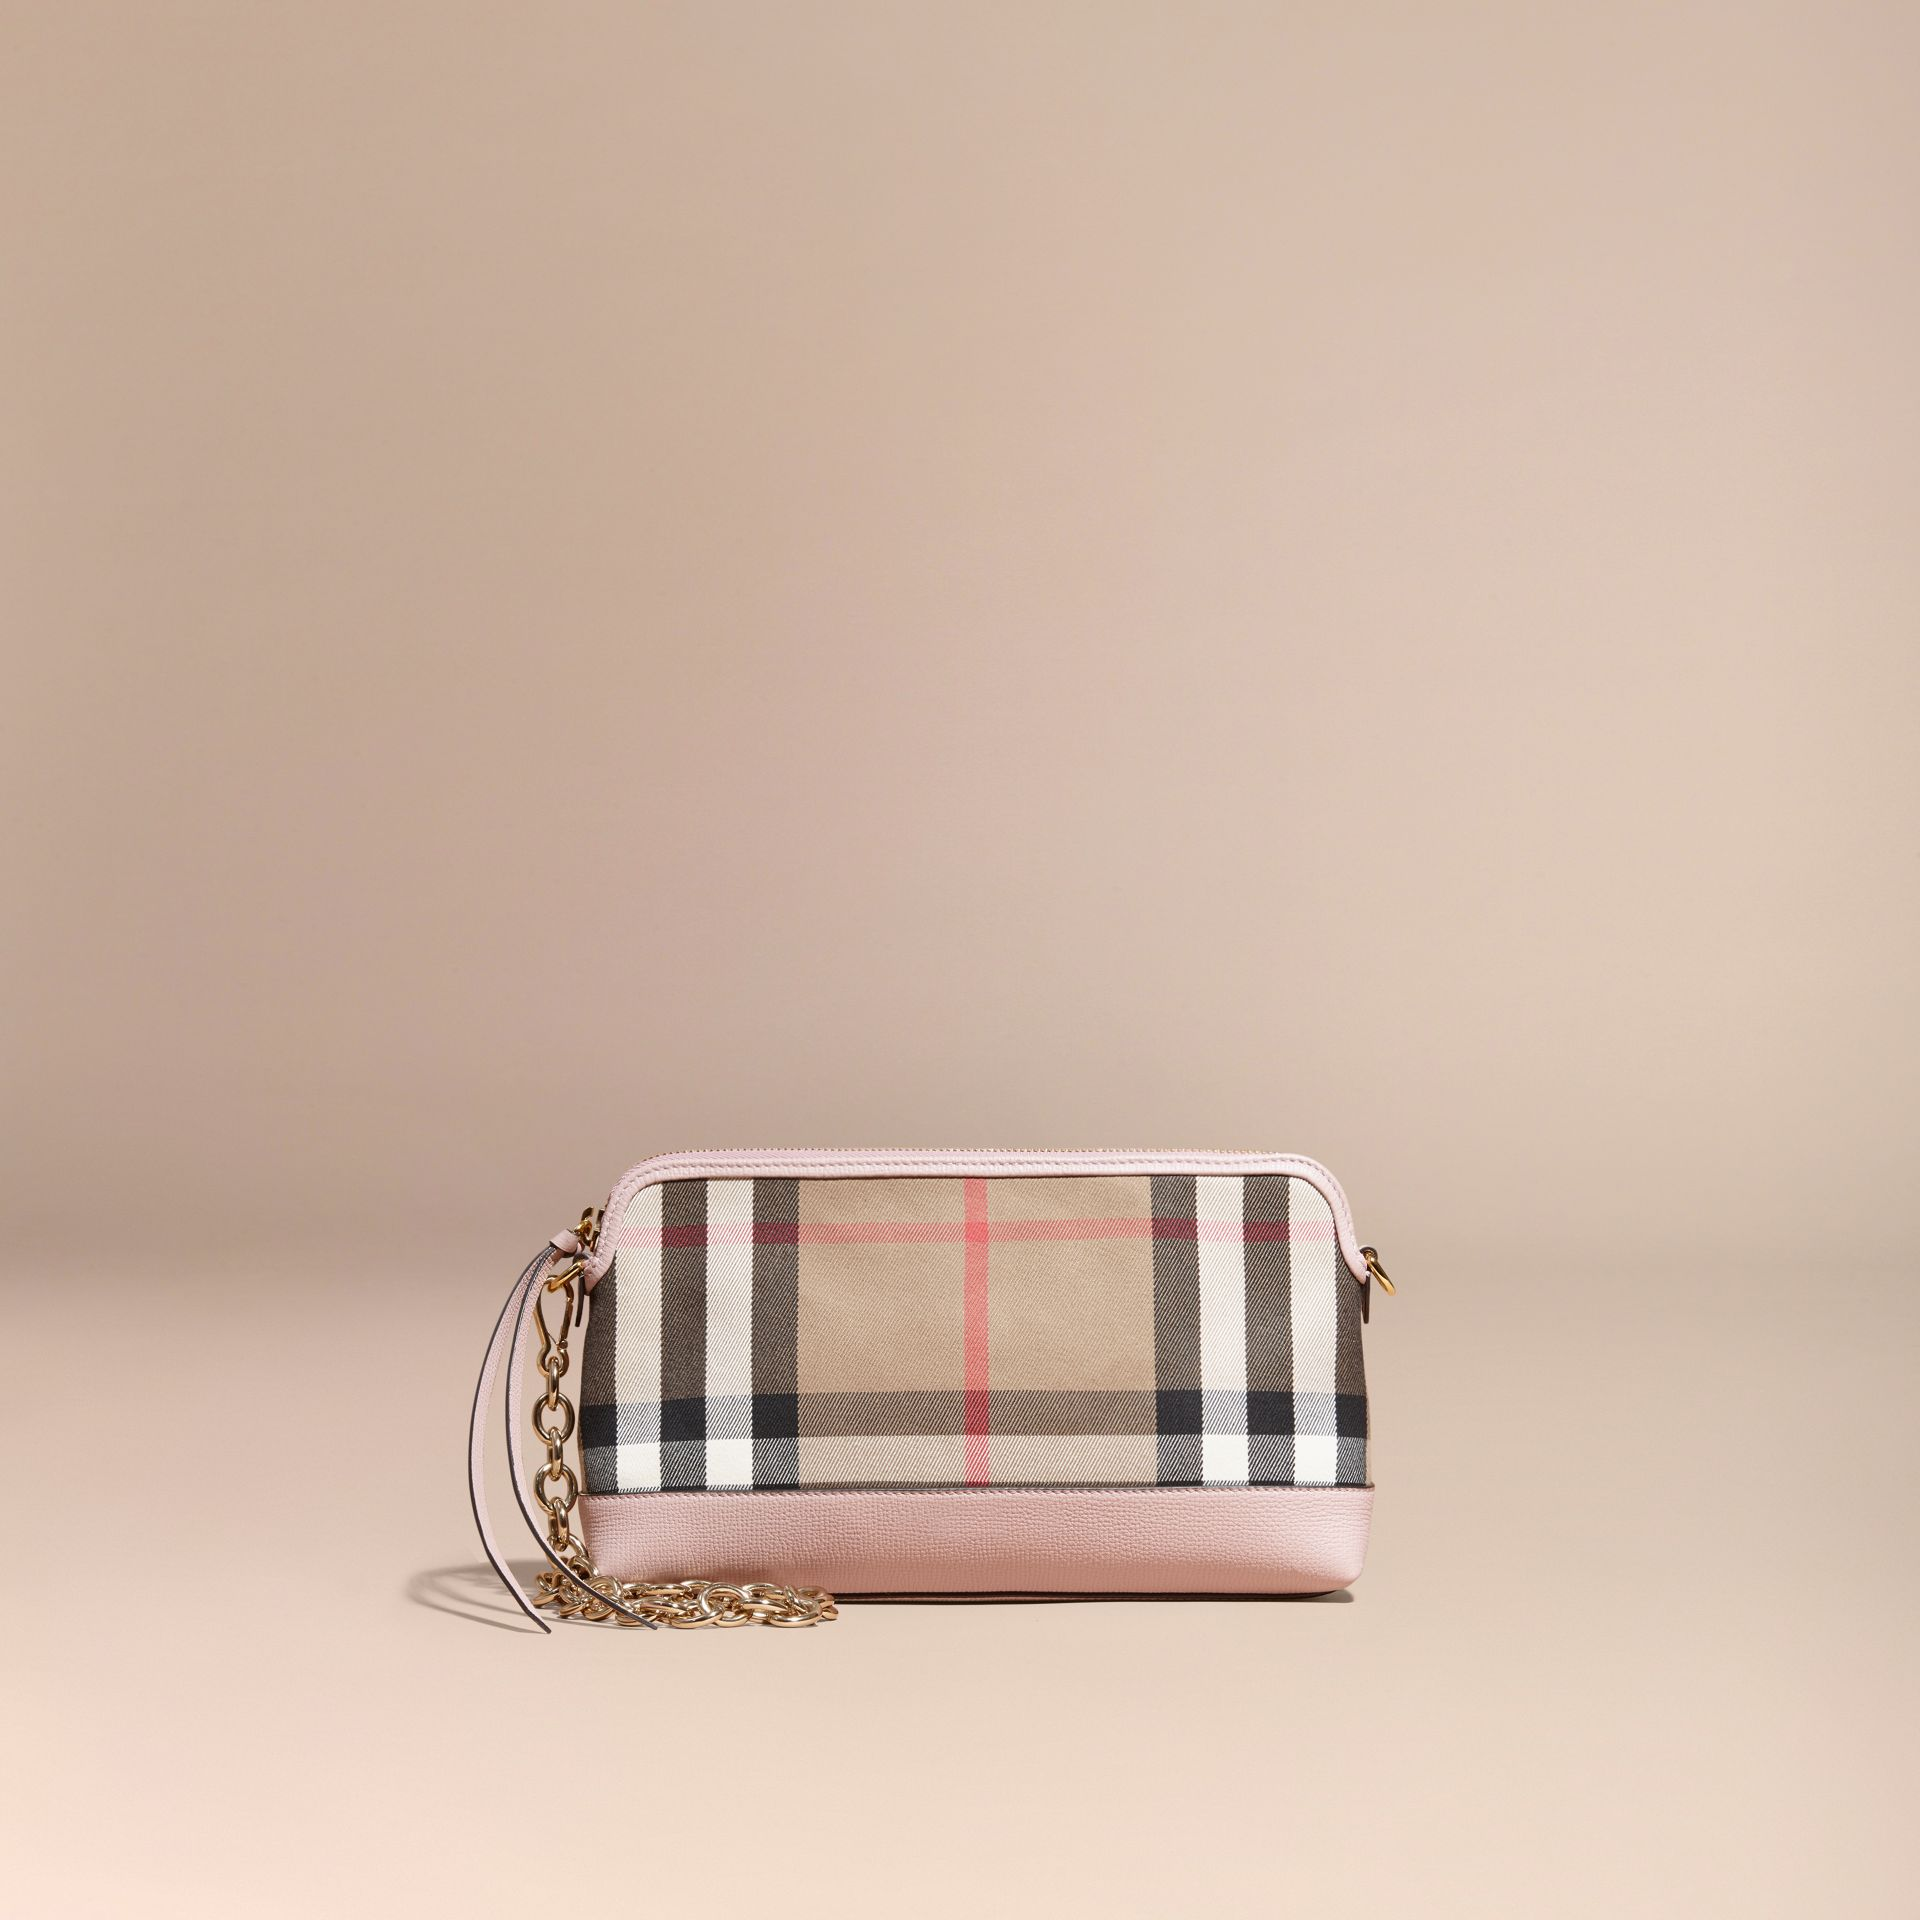 House Check and Leather Clutch Bag in Pale Orchid - Women | Burberry United Kingdom - gallery image 9